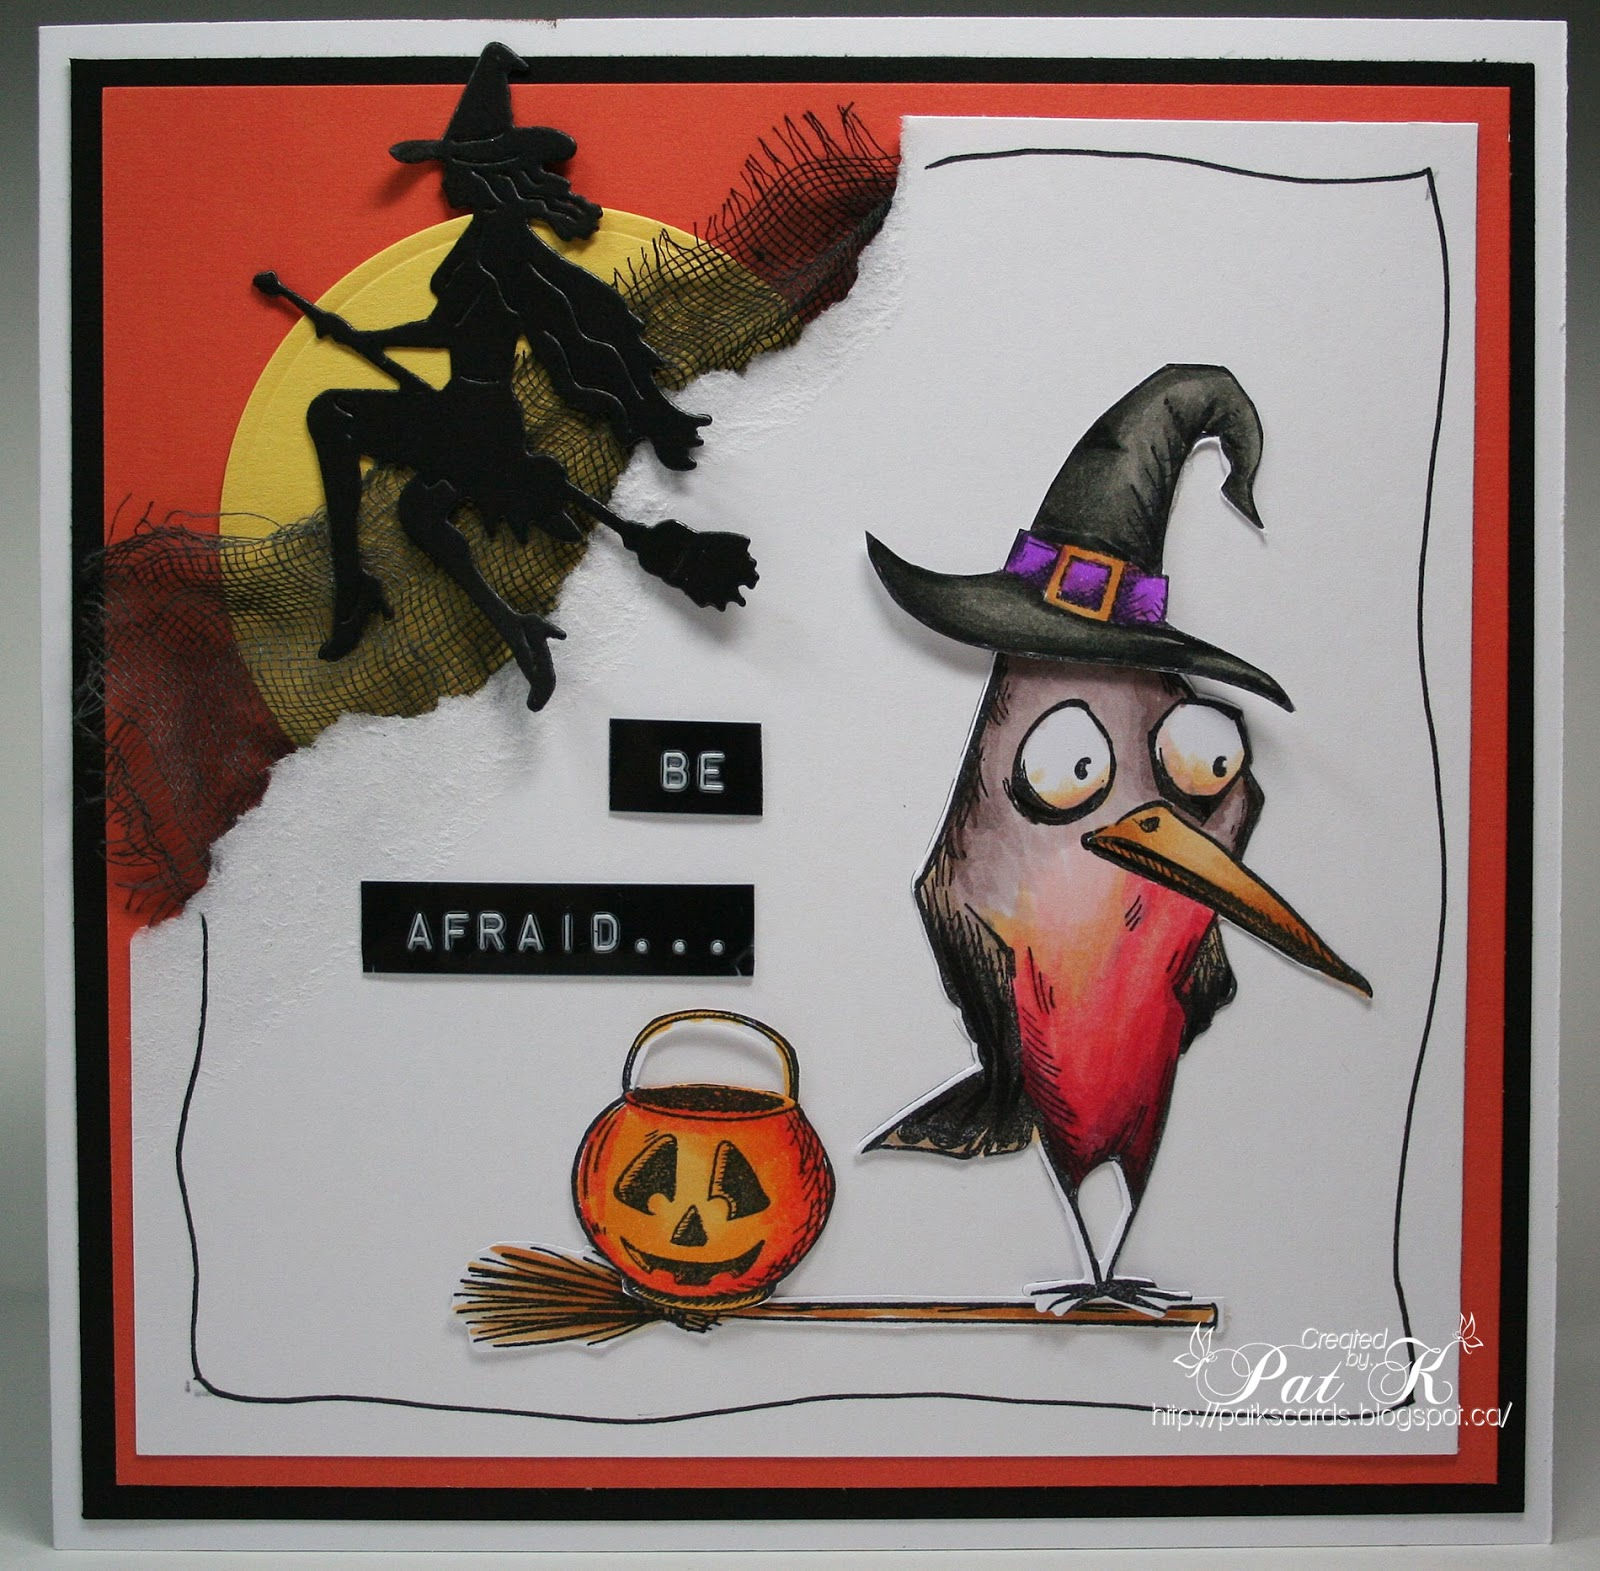 Crazy Halloween Decorations: Paper, Markers, Ink, Oh My!: Bird Crazy Halloween